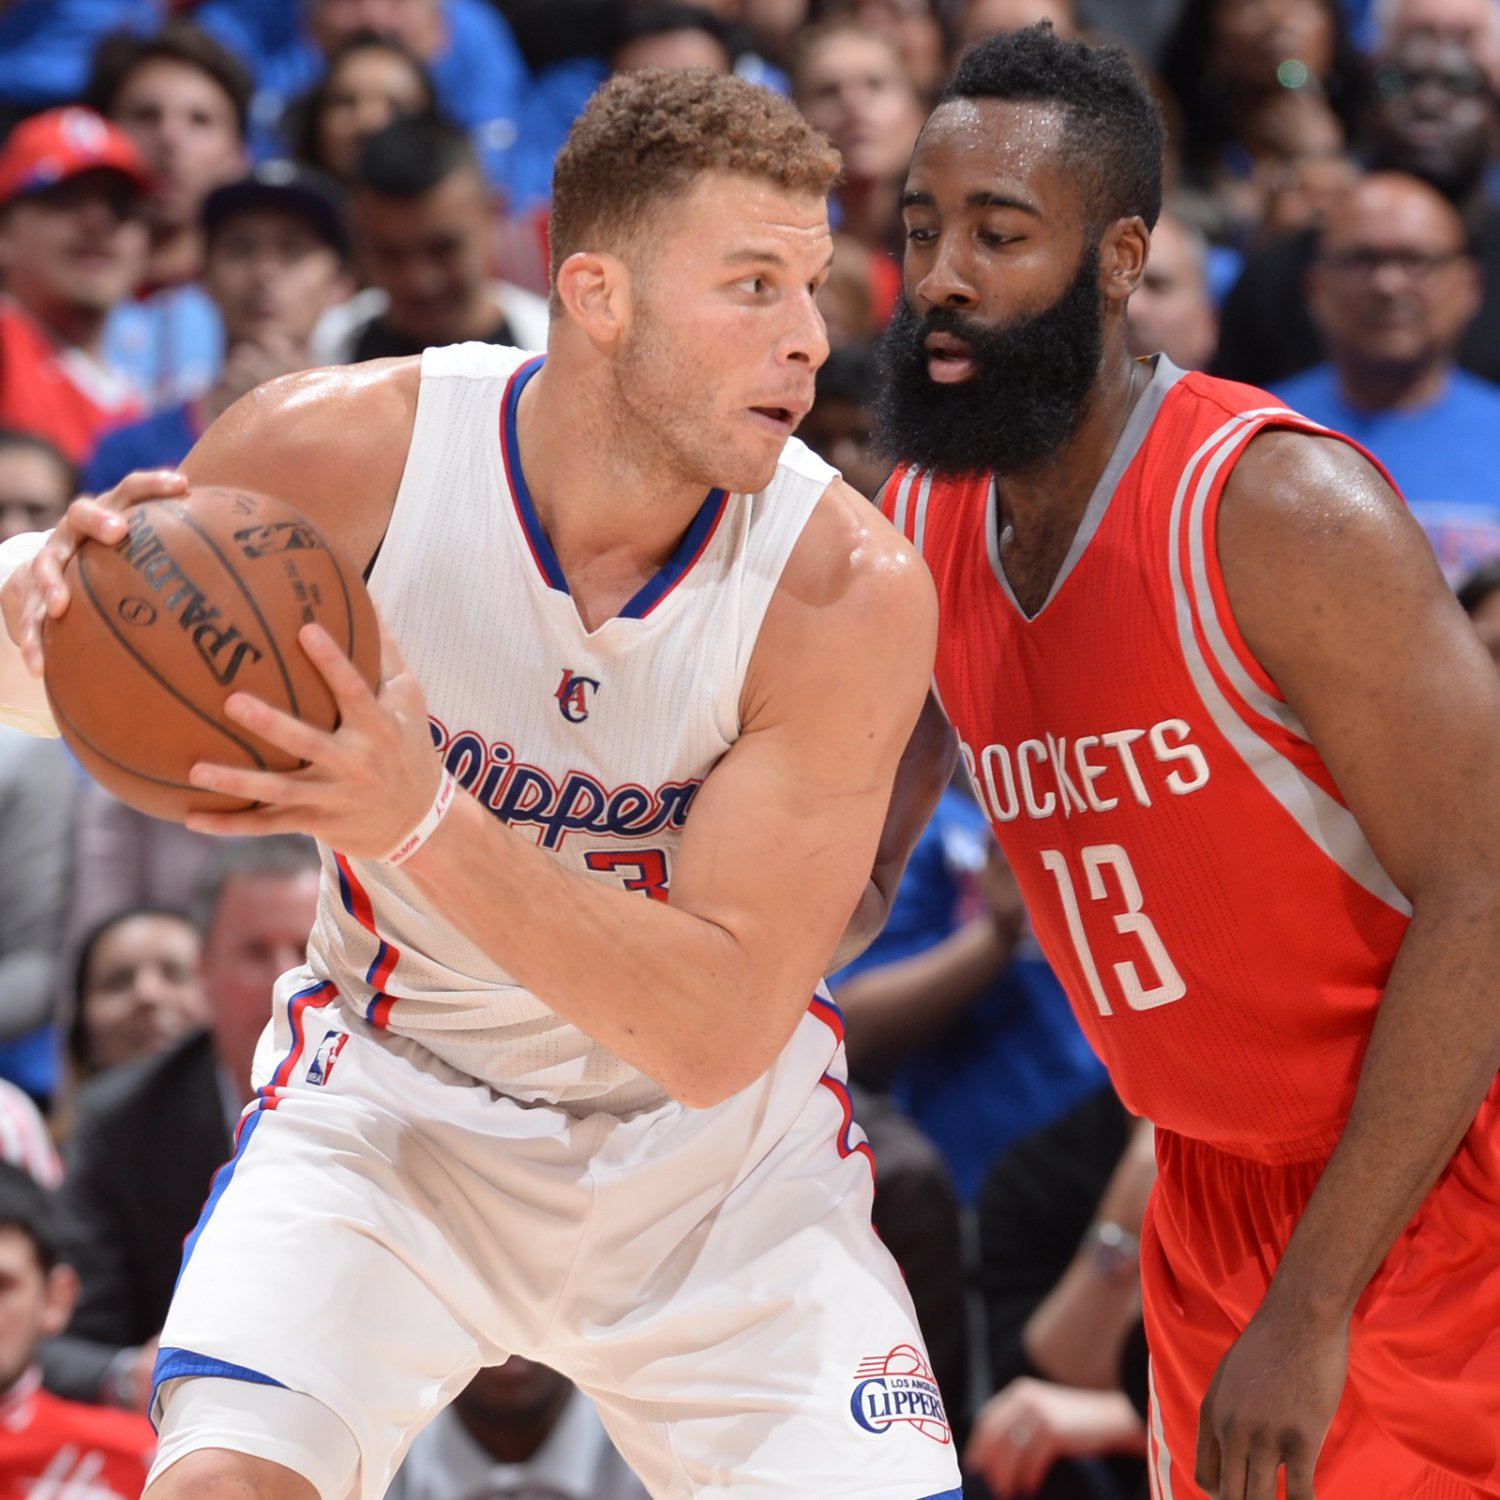 Houston Rockets Where To Watch The Upcoming Match Espn: NBA Playoffs 2015: TV Info, Predictions For Rockets